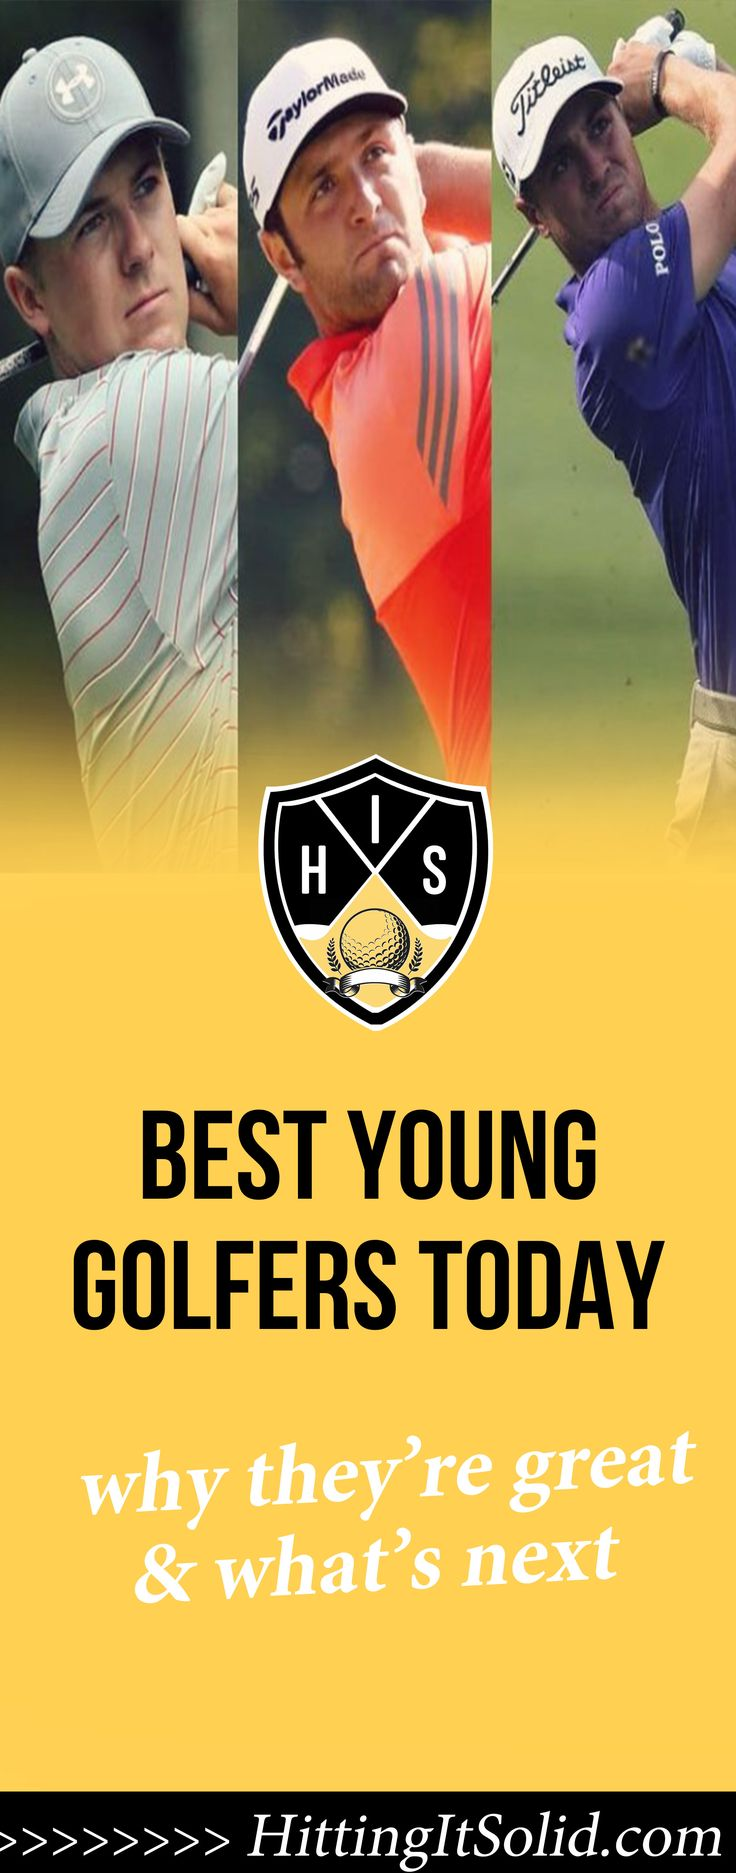 Who are the best young golfers in the world today. What makes them great and what we can expect next of them.